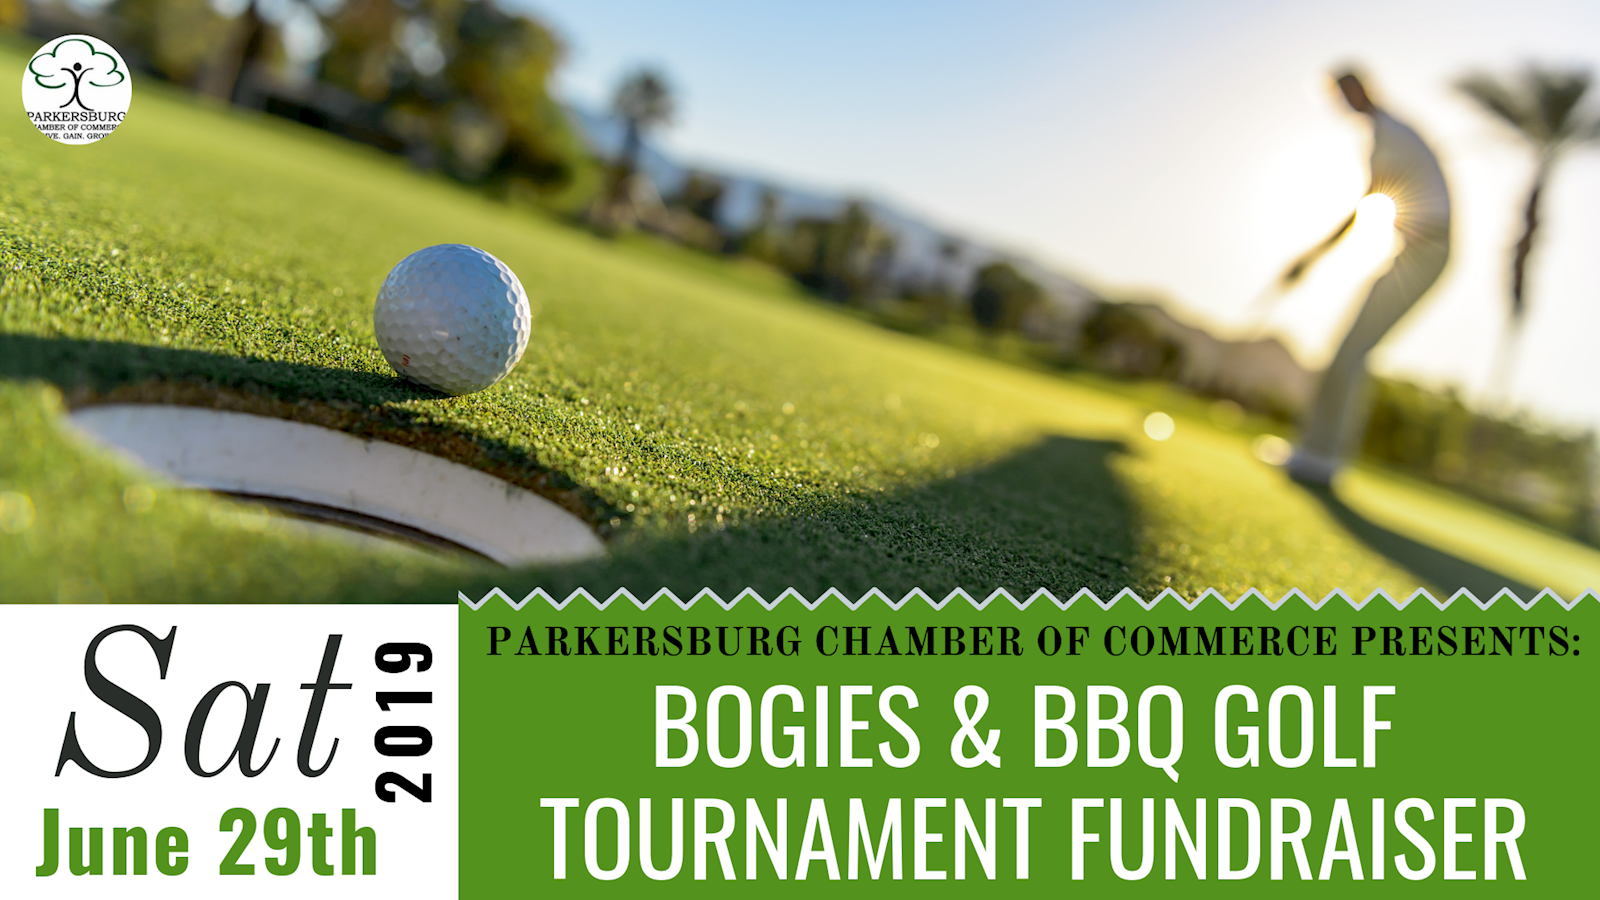 Bogies & BBQ Golf Tournament & Fundraiser